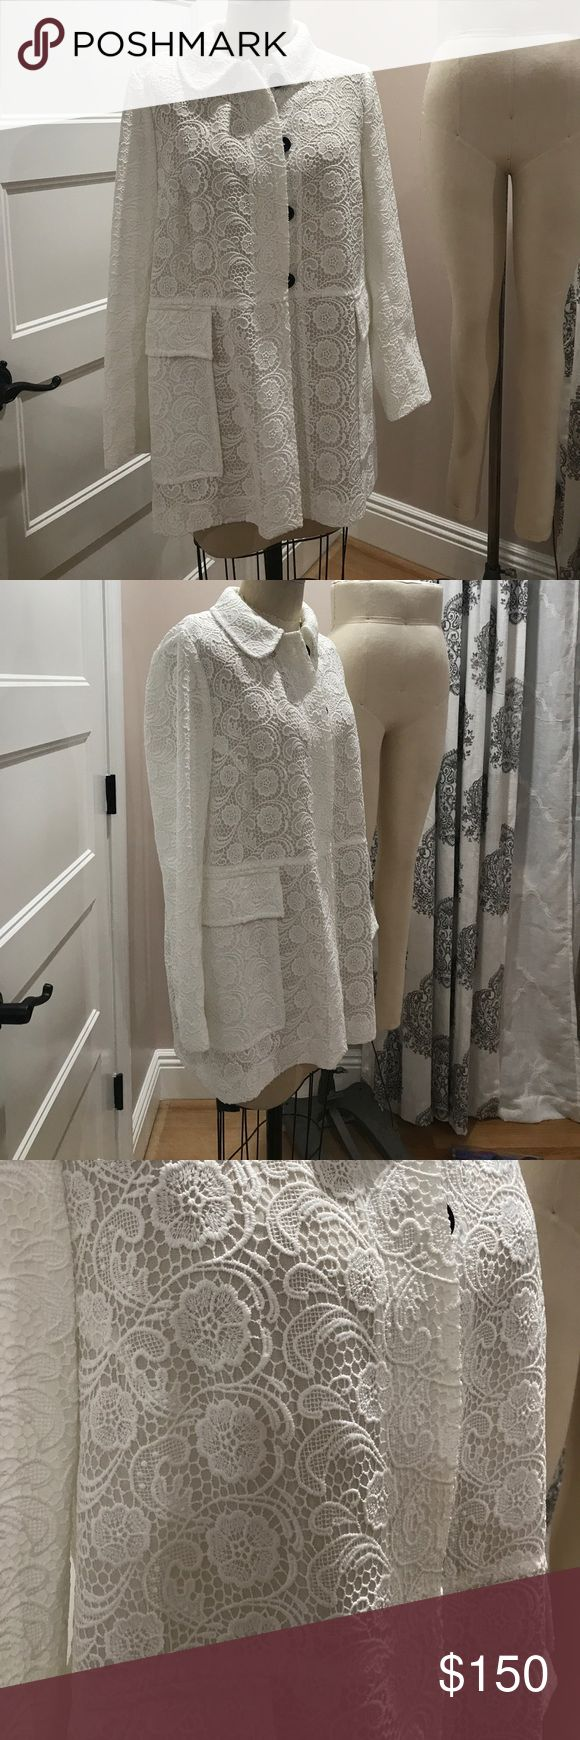 Never Worn ZARA Floral Lace White Jacket Beautiful embellished floral laced embroidered jacket in white. Elegant and classy. Looks likes the great designer pieces. Brand new without Tags! In perfect condition. No stains, pulls or damages. This piece would really help to pull any outfit together, especially those for special occasions. PRICE FIRM. Zara Jackets & Coats